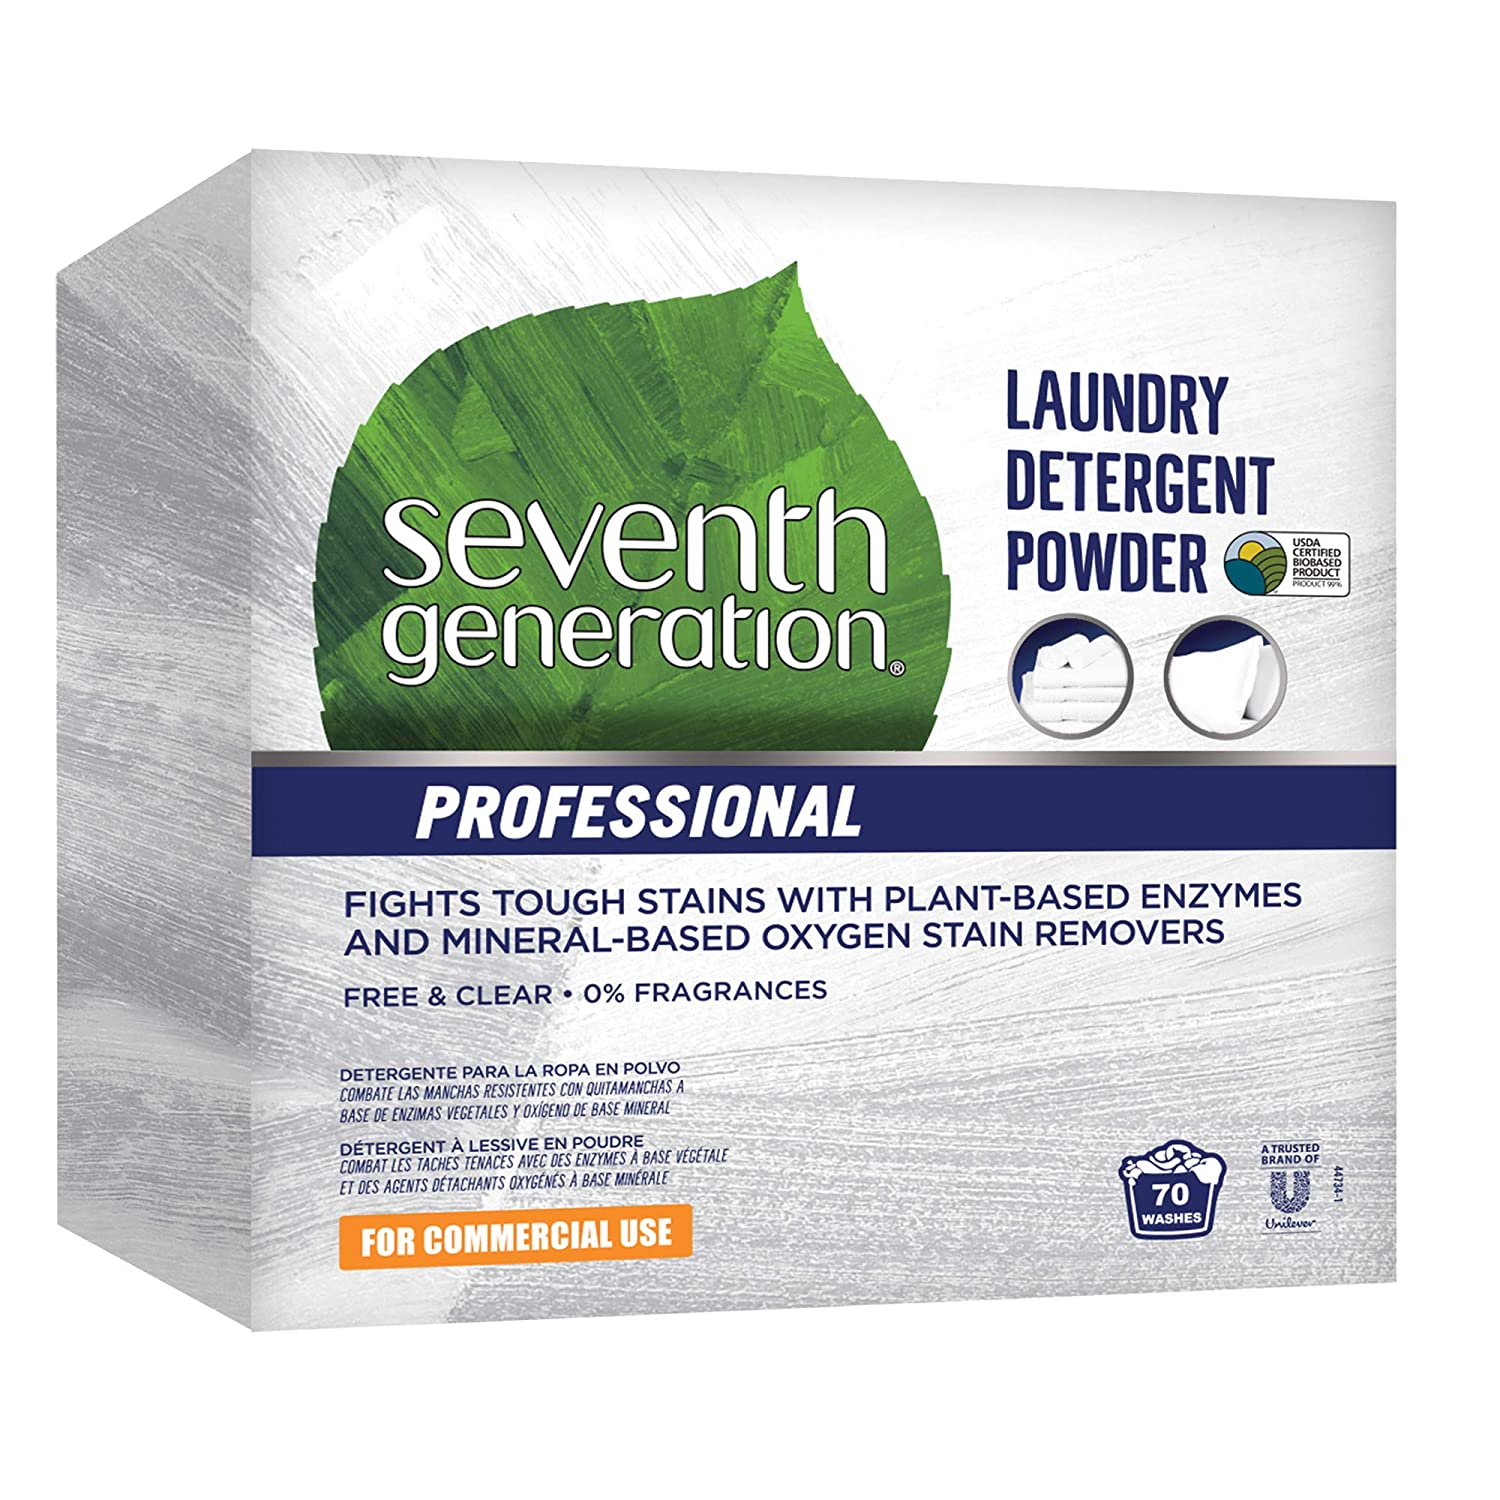 Seventh Generation Professional Laundry Detergent Powder, Free & Clear, Unscented, 112...